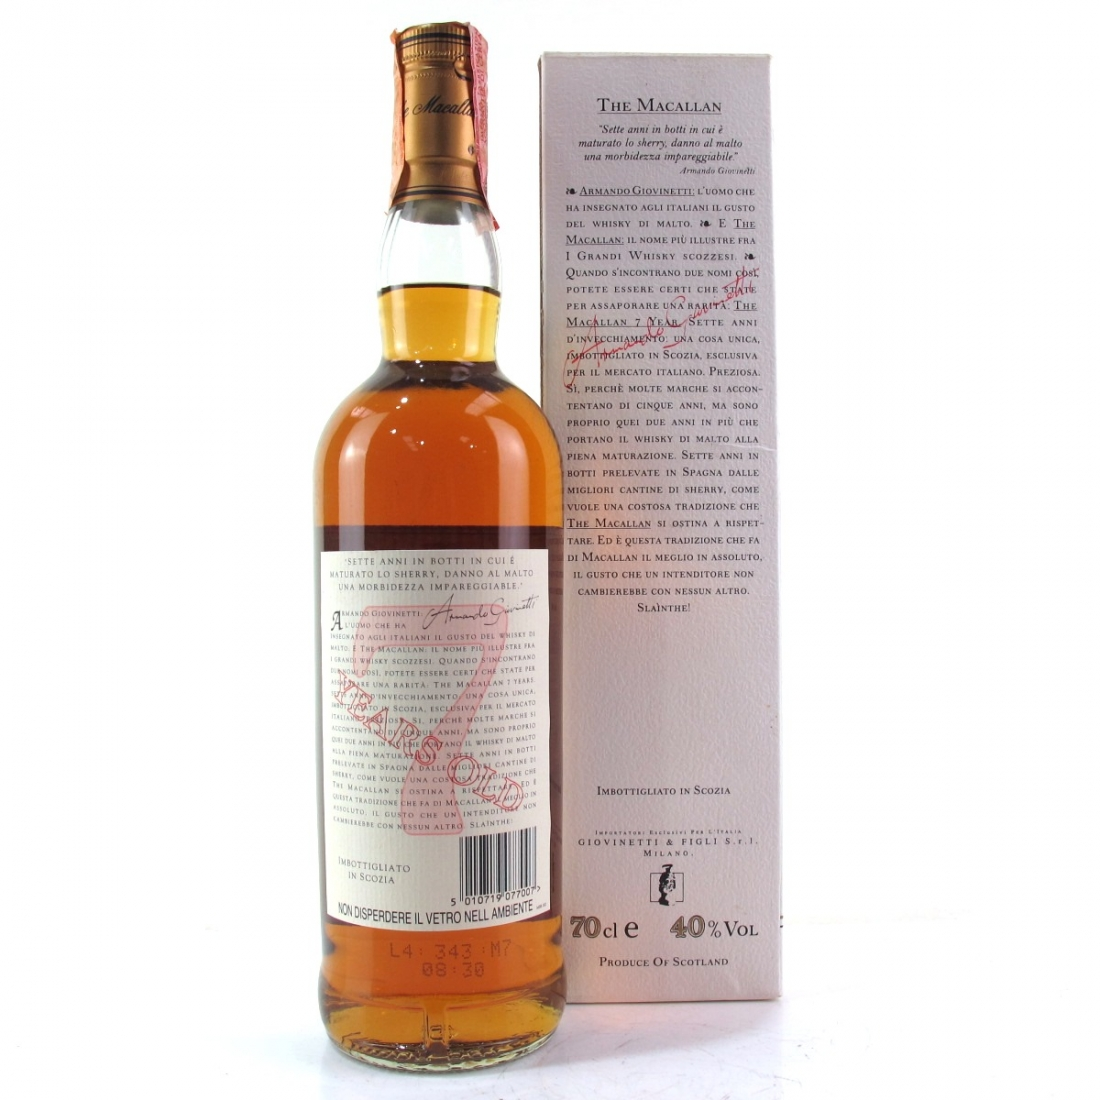 Macallan 7 Year Old Armando Giovinetti Special Selection